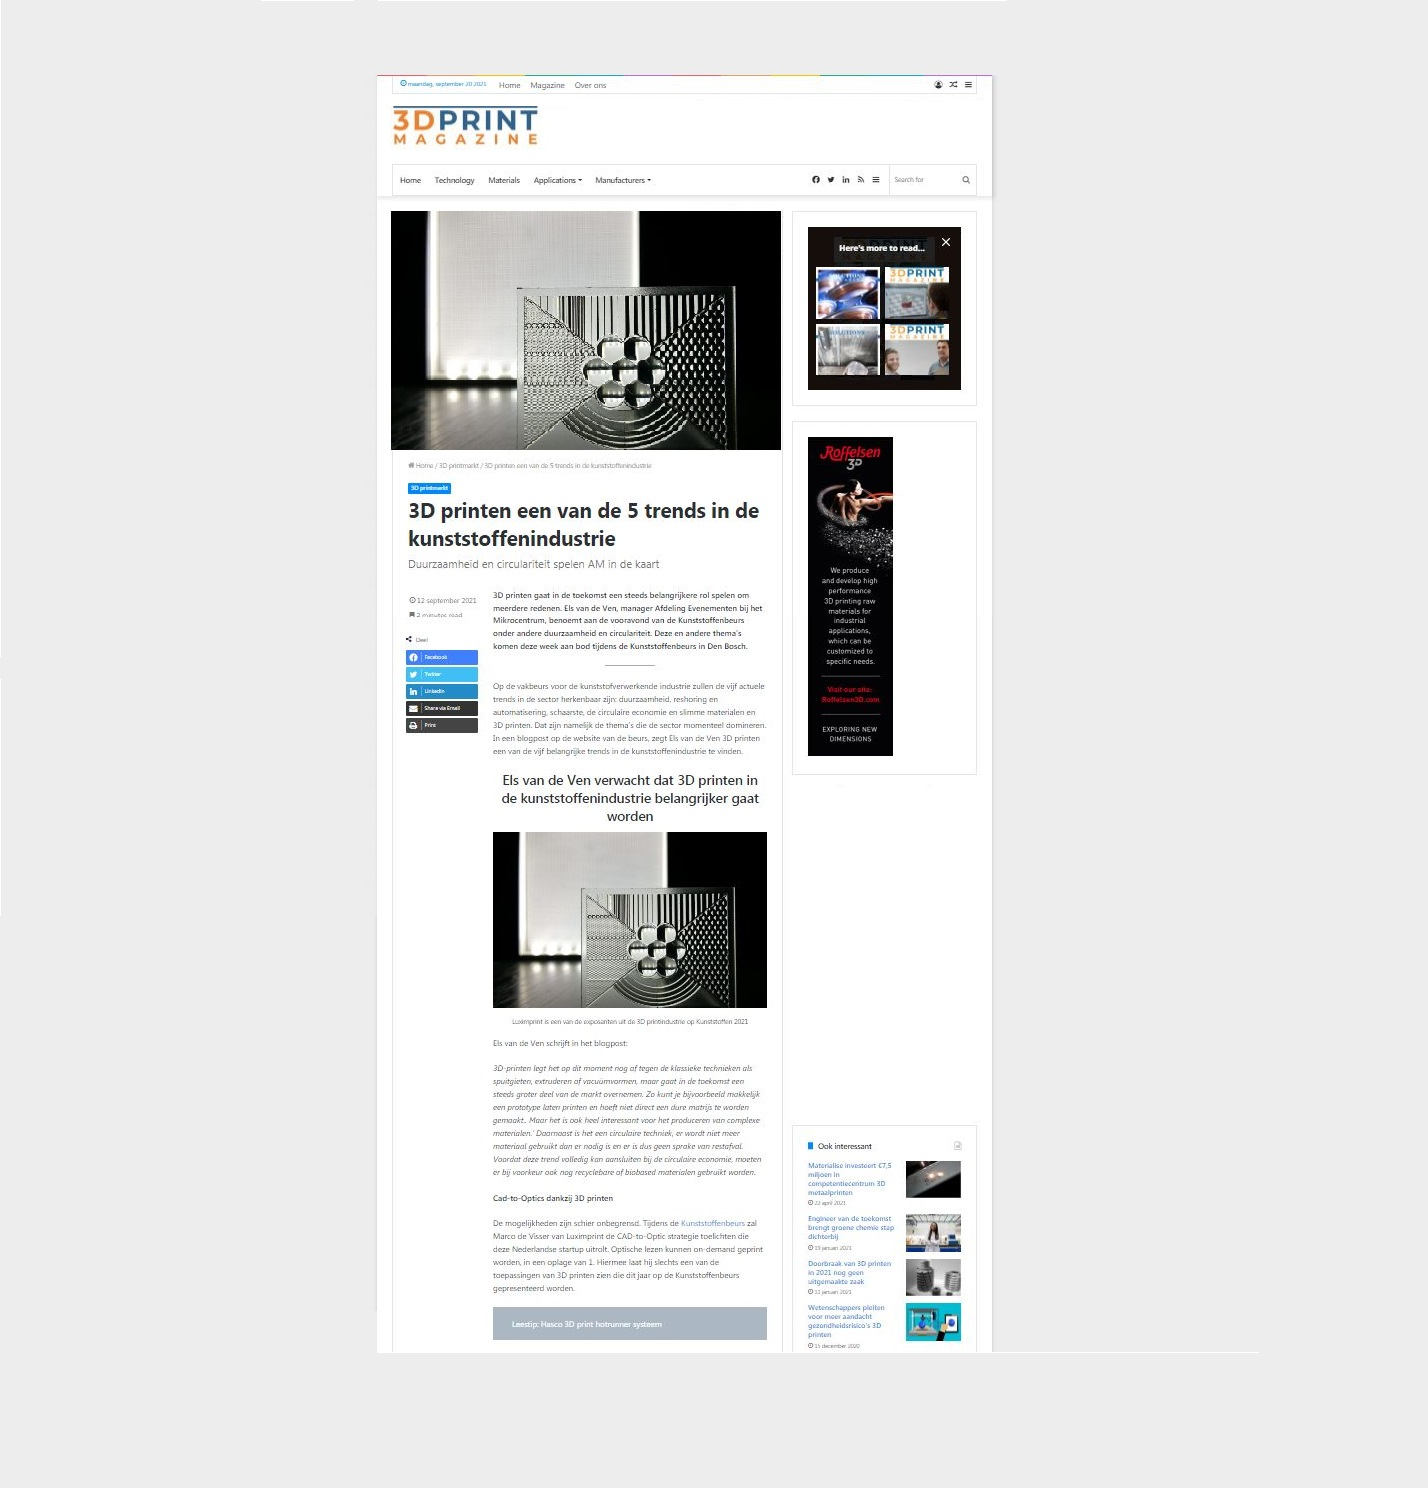 Image showing storyline of 3D print magazine article about rapid prototyping custom optics by Luximprint